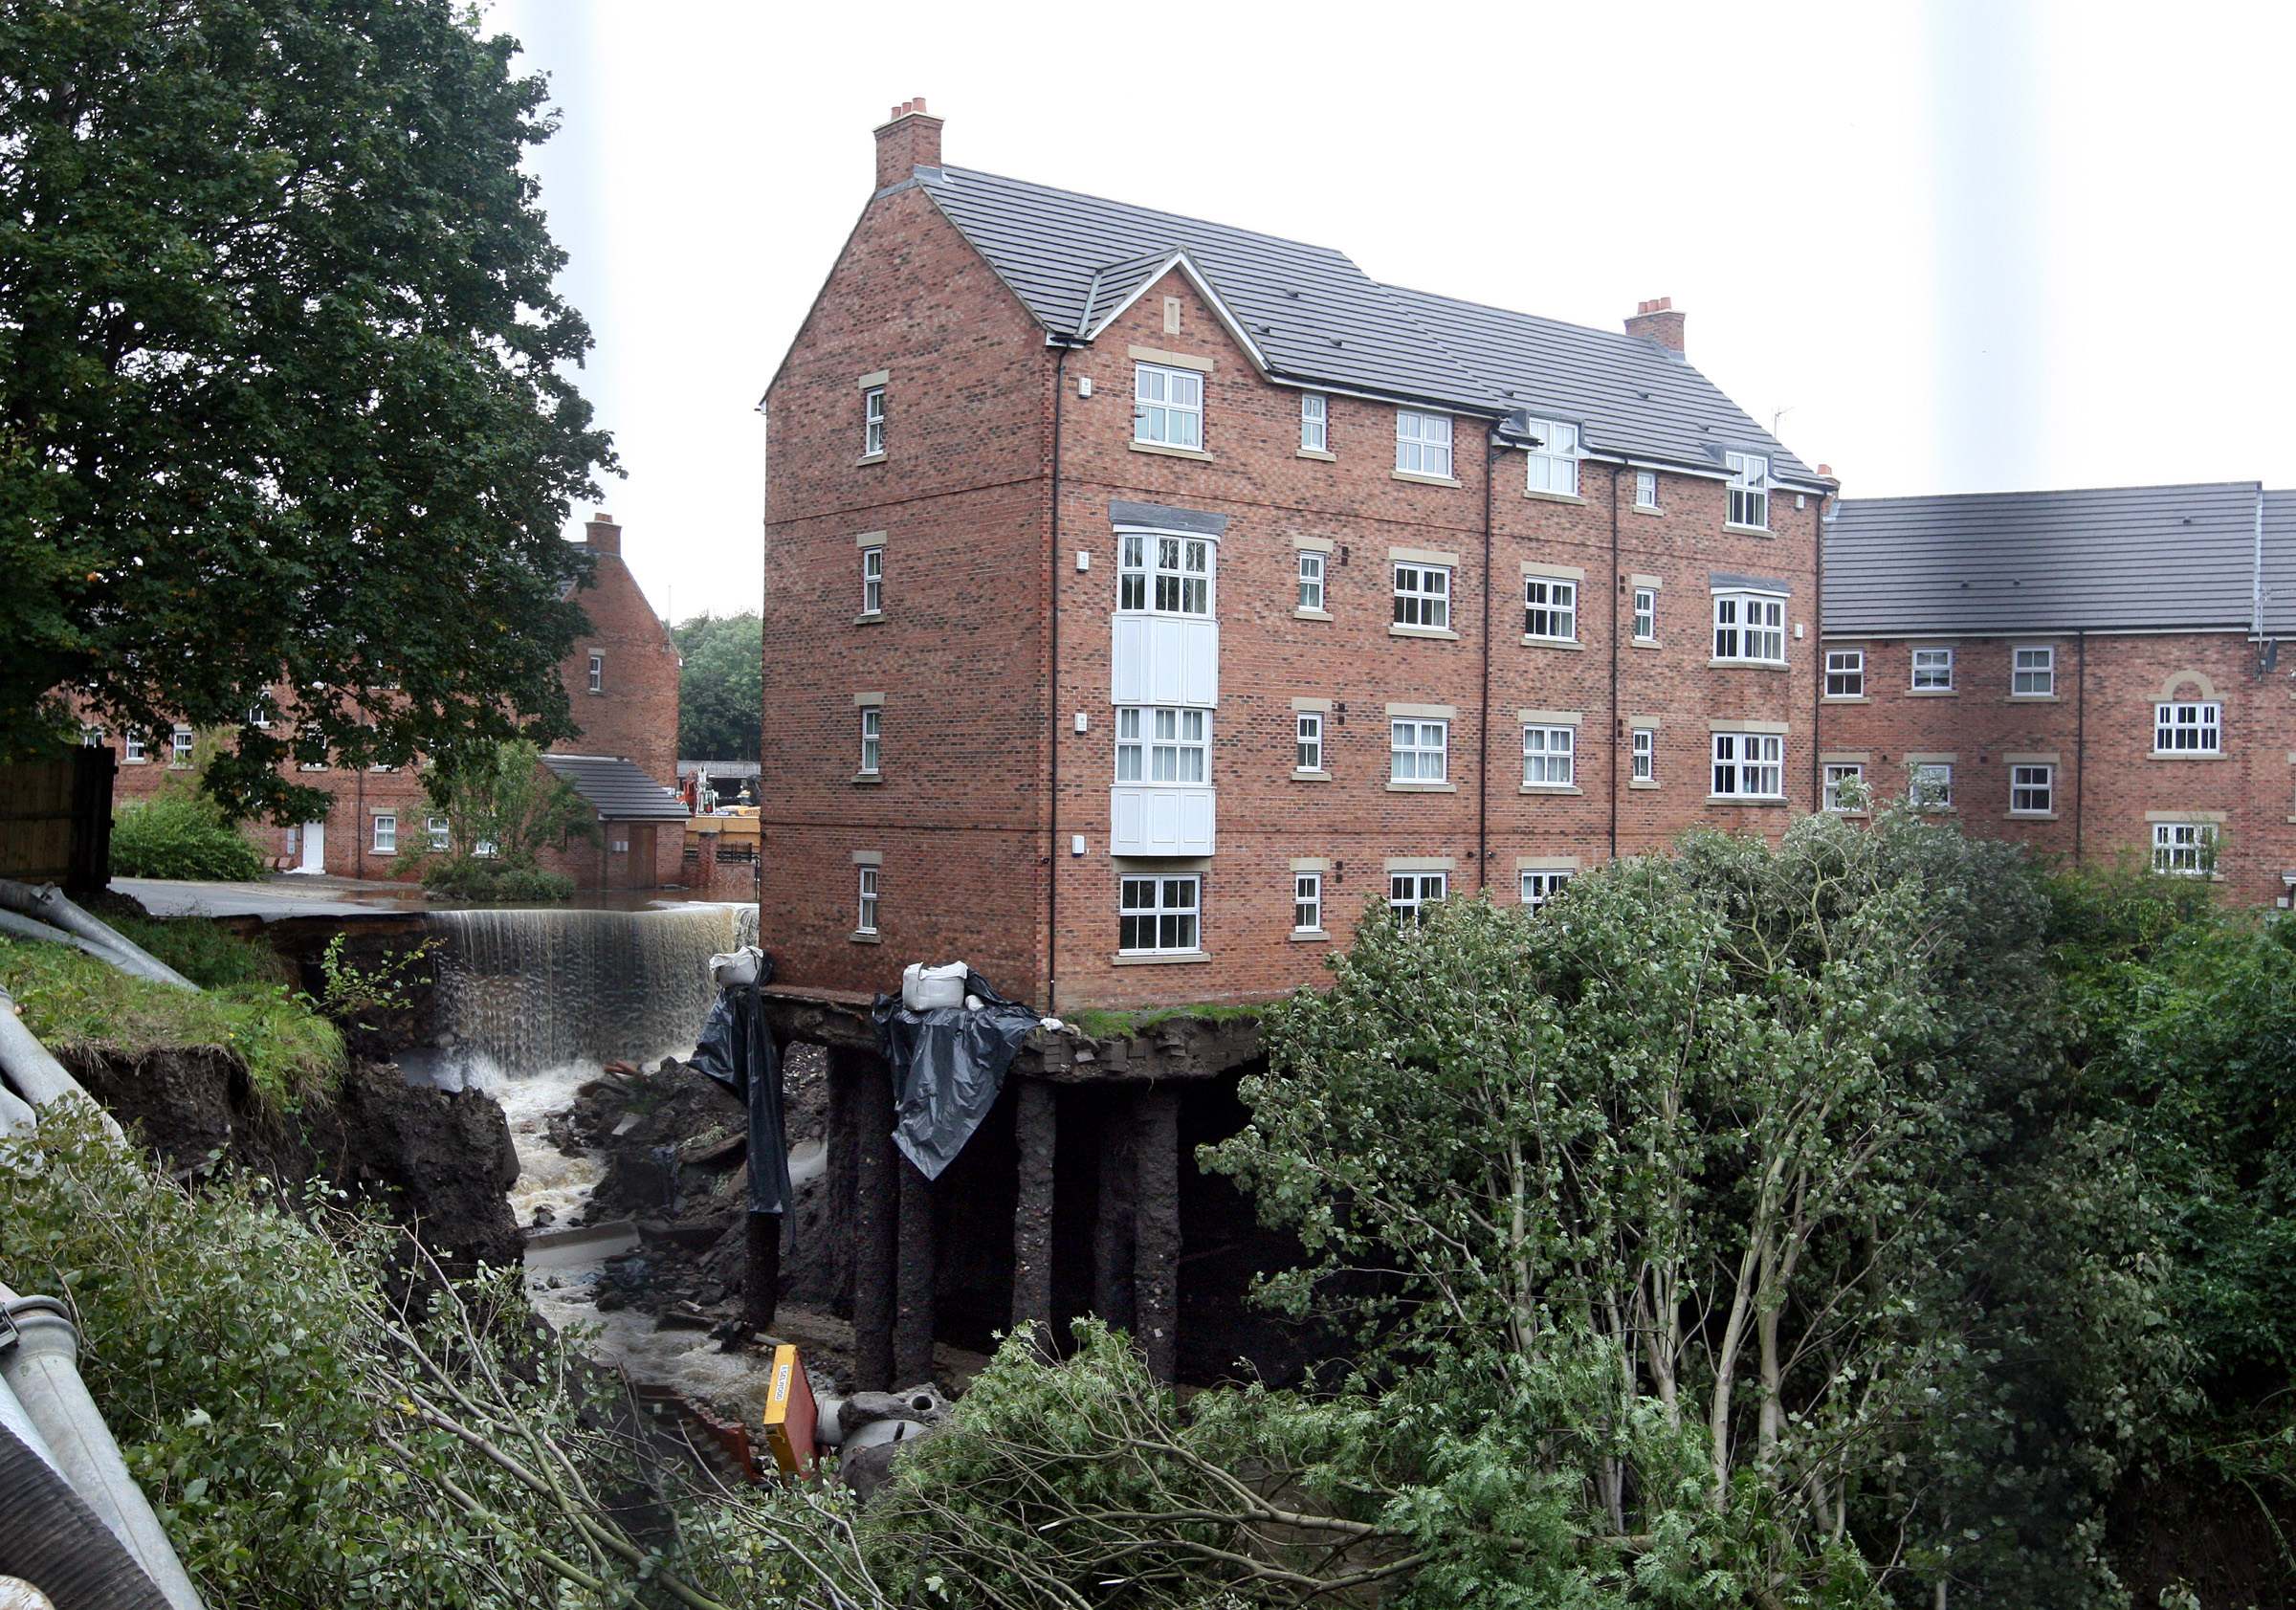 A view of the block of apartments which have there foundations washed away from the heavy flood waters in Newburn, near Newcastle, England